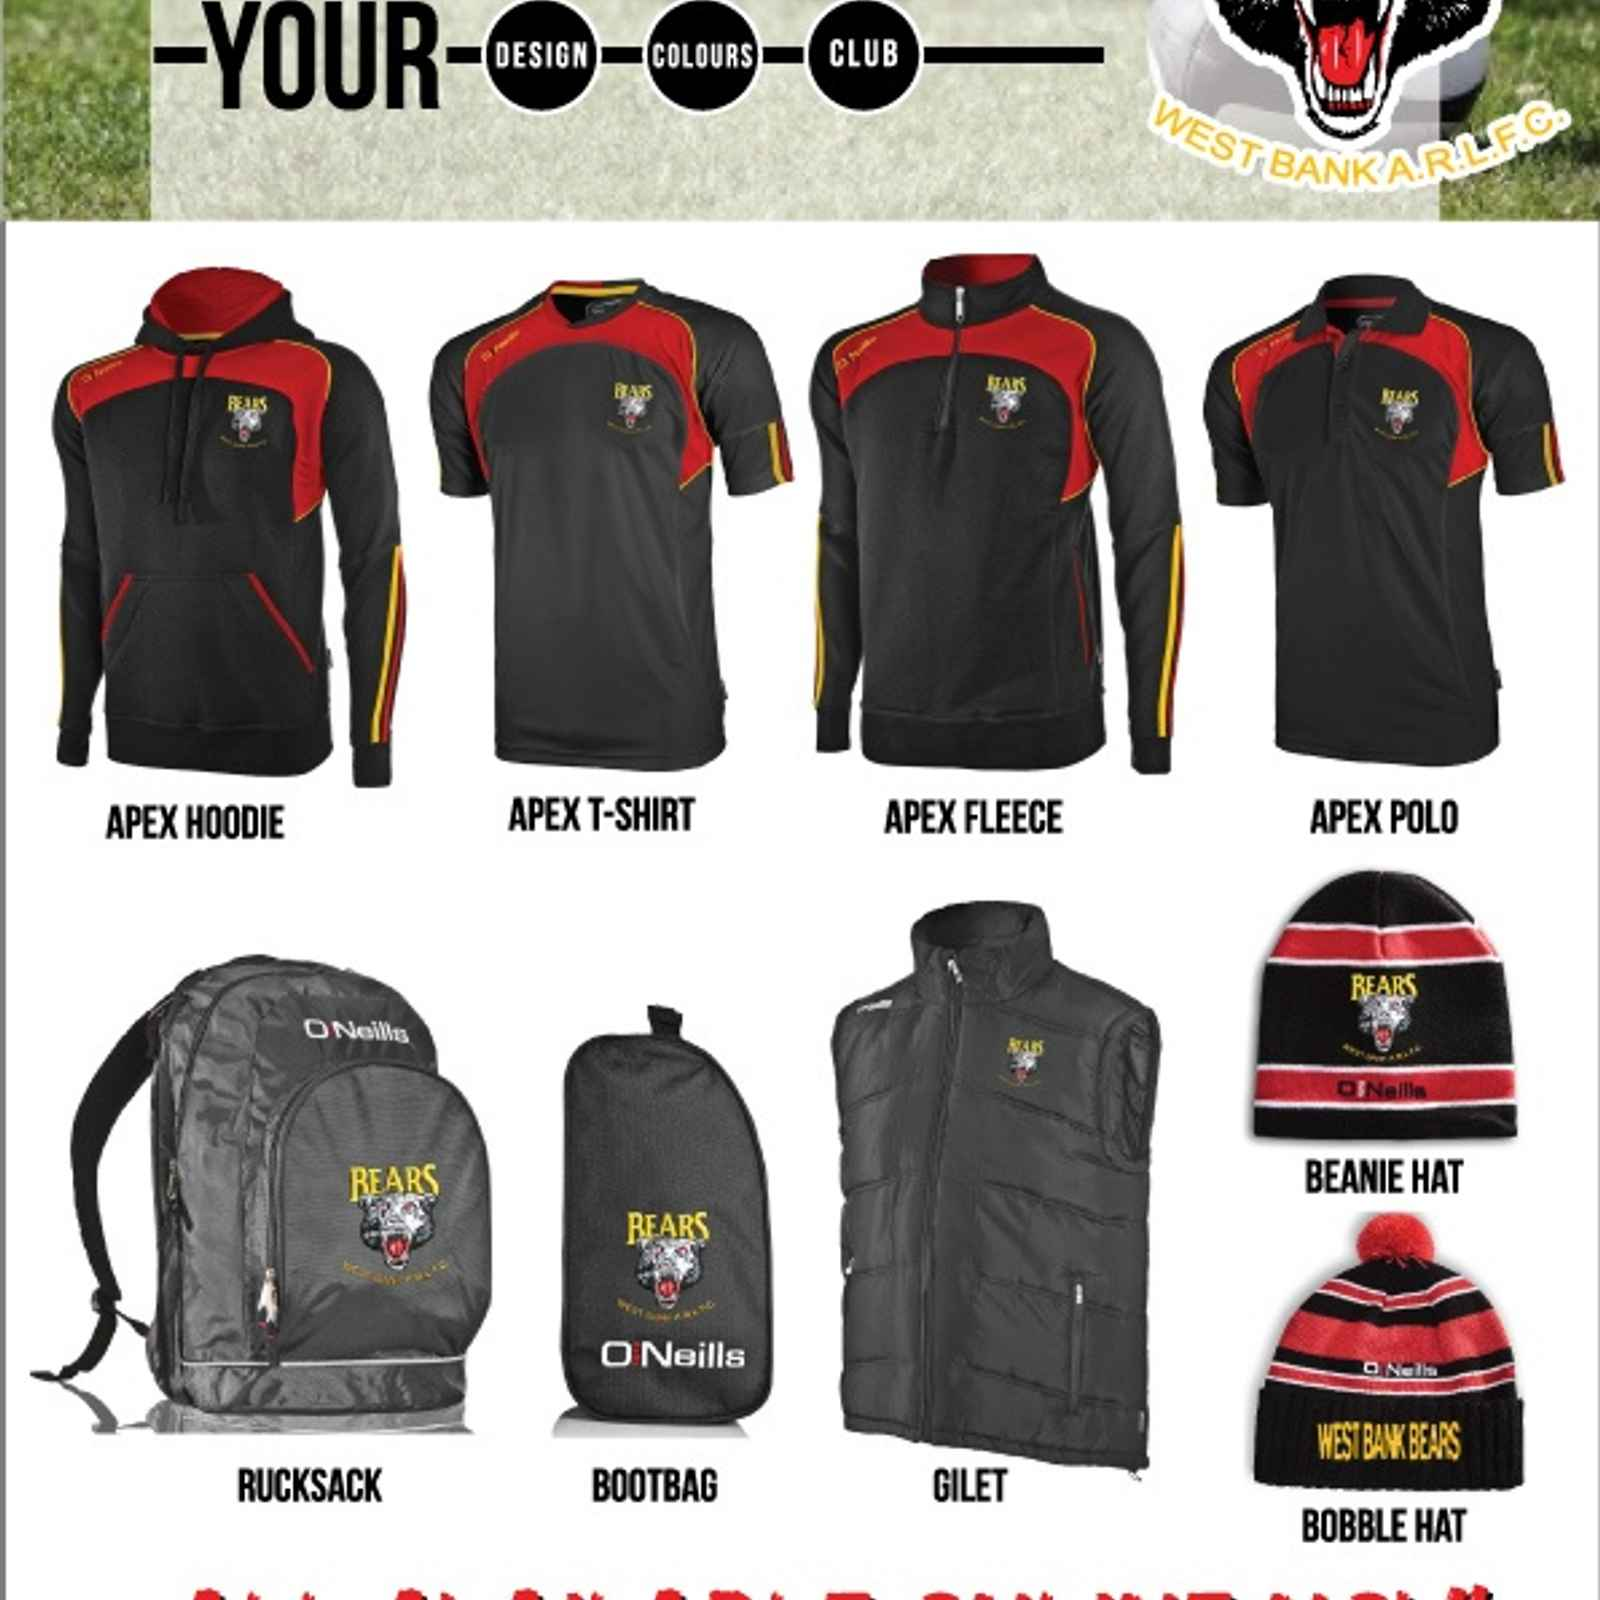 O'Neills Club Shop Now Open